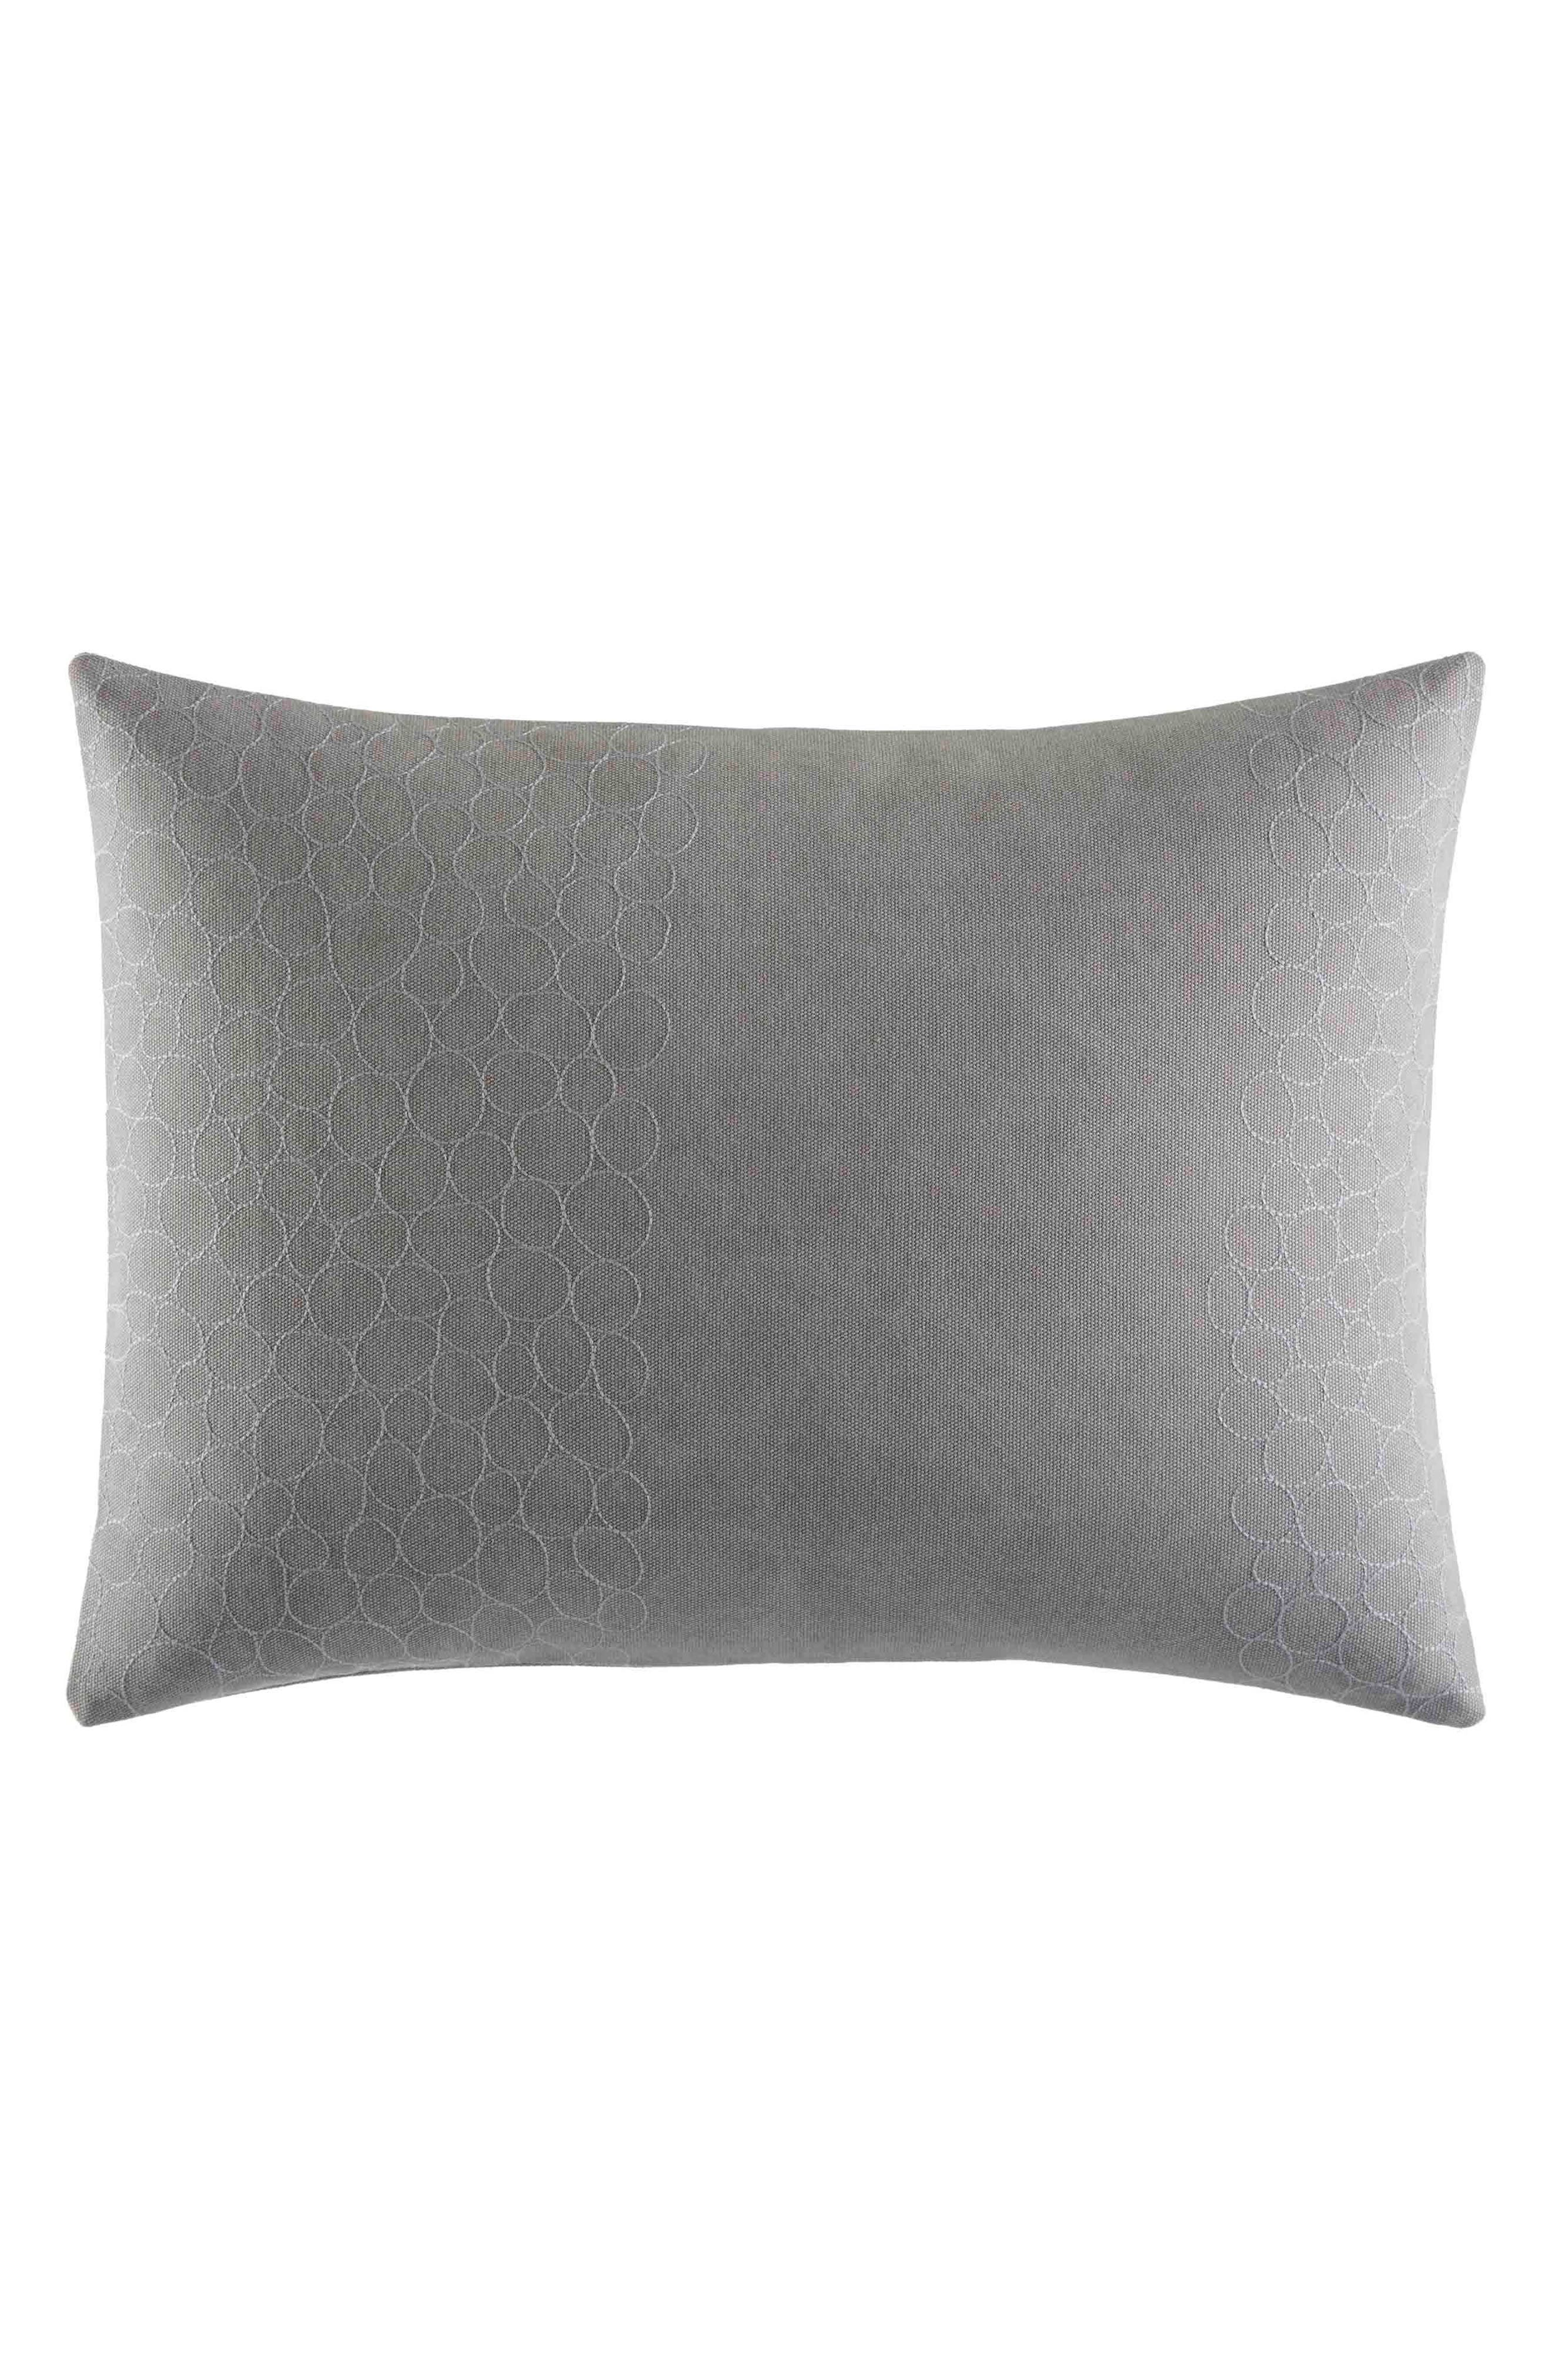 Transparent Leaves Breakfast Pillow,                         Main,                         color, 075